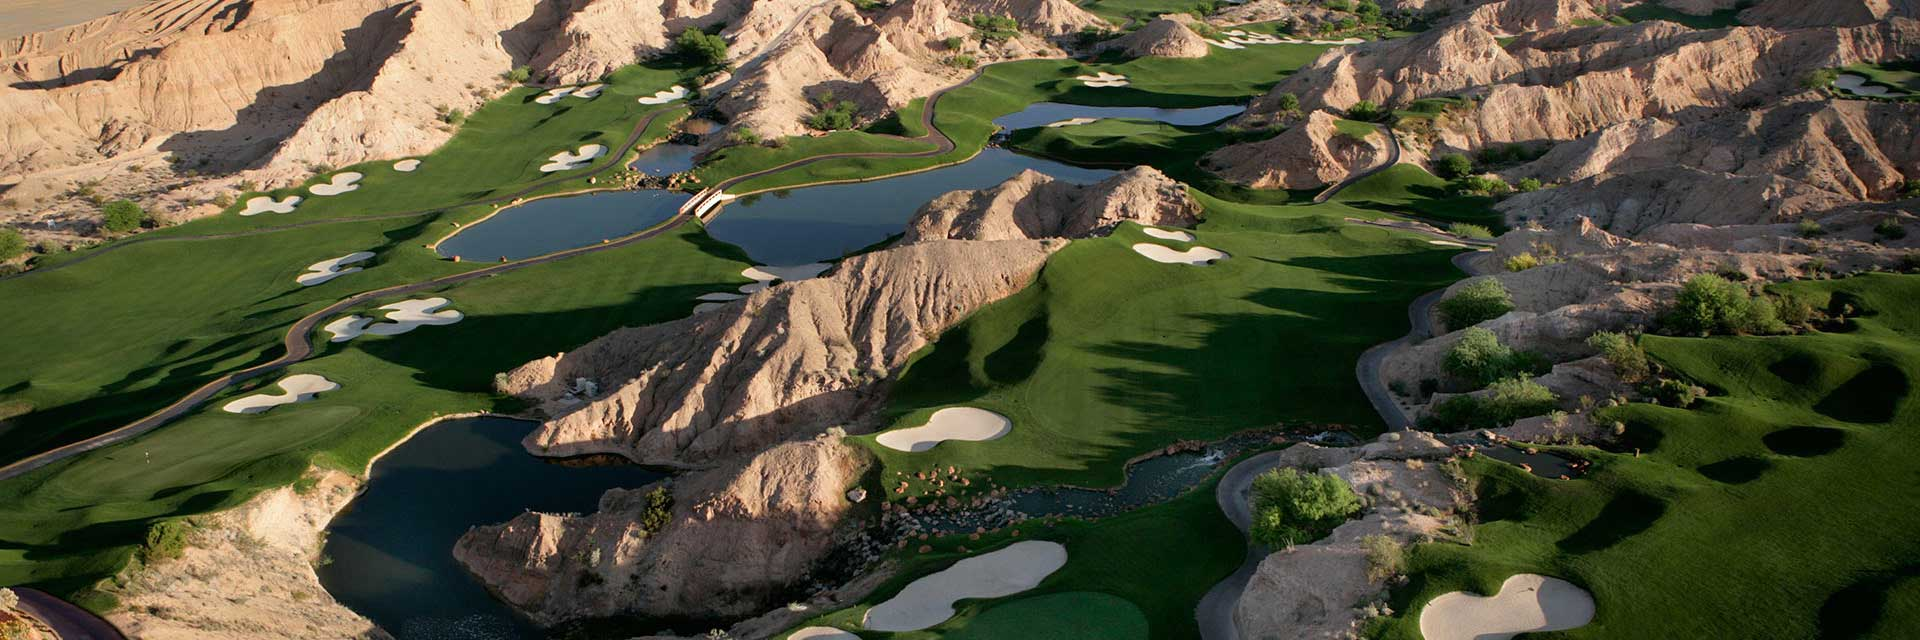 Mesquite, NV: Stonehaven Private Homes + Wolf Creek / Conestoga / SandHollow / Coyote for $209 per person, per day!